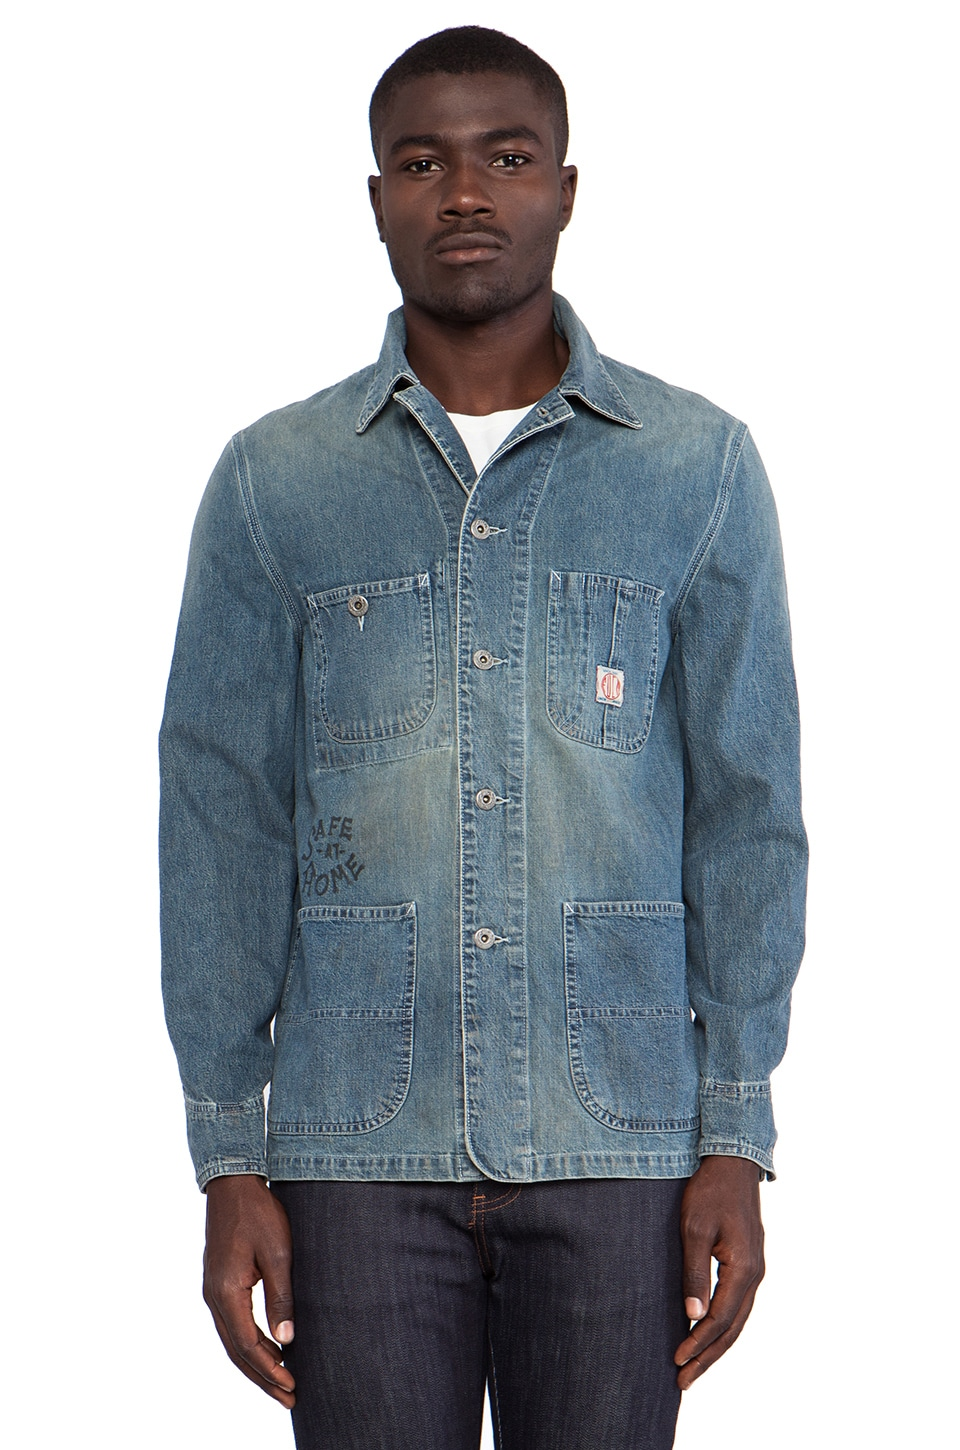 Fuct SSDD Heart on Fire Denim Coverall in Light Wash